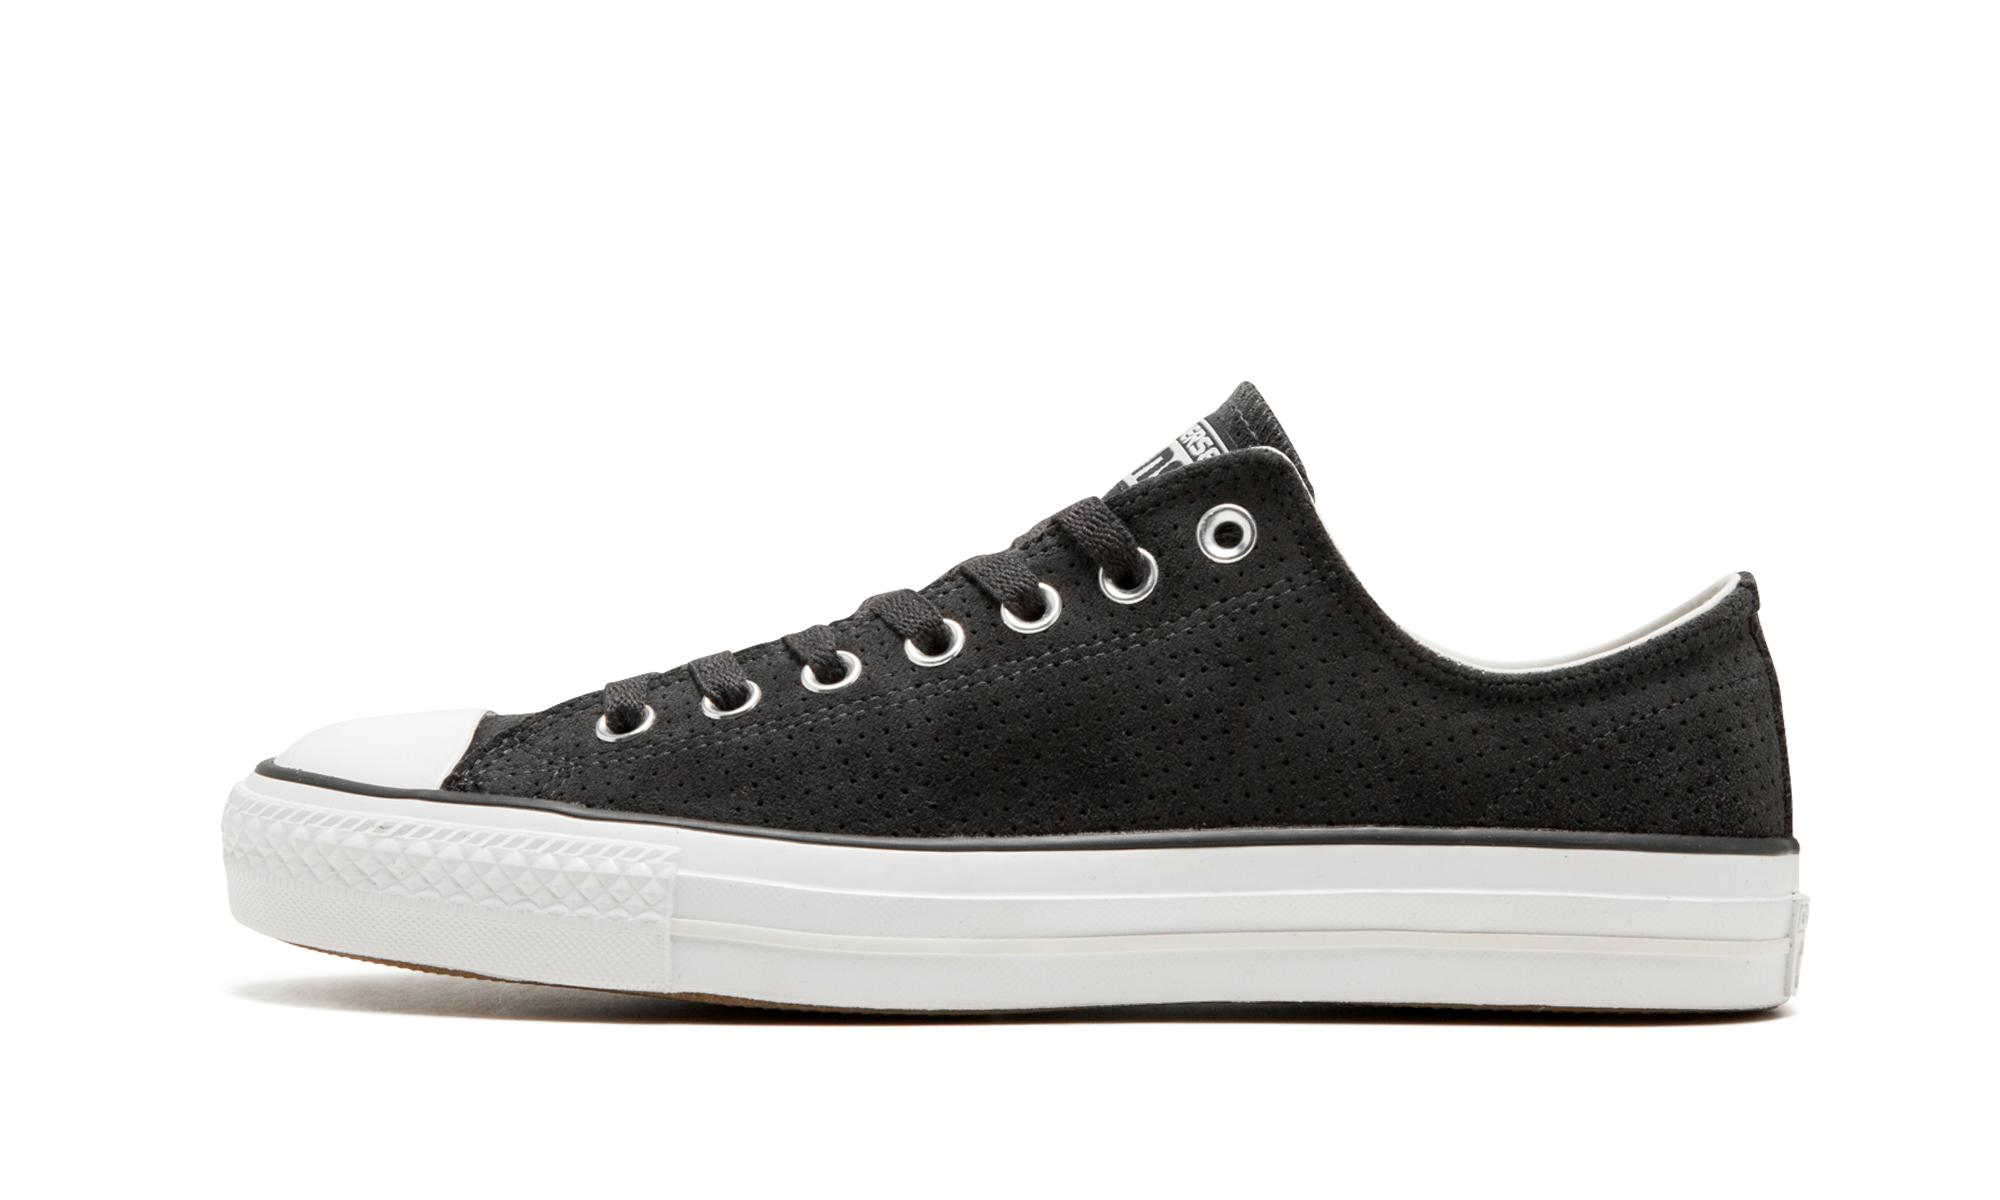 86efc80eebfcca Lyst - Converse Ctas Pro Ox in Black for Men